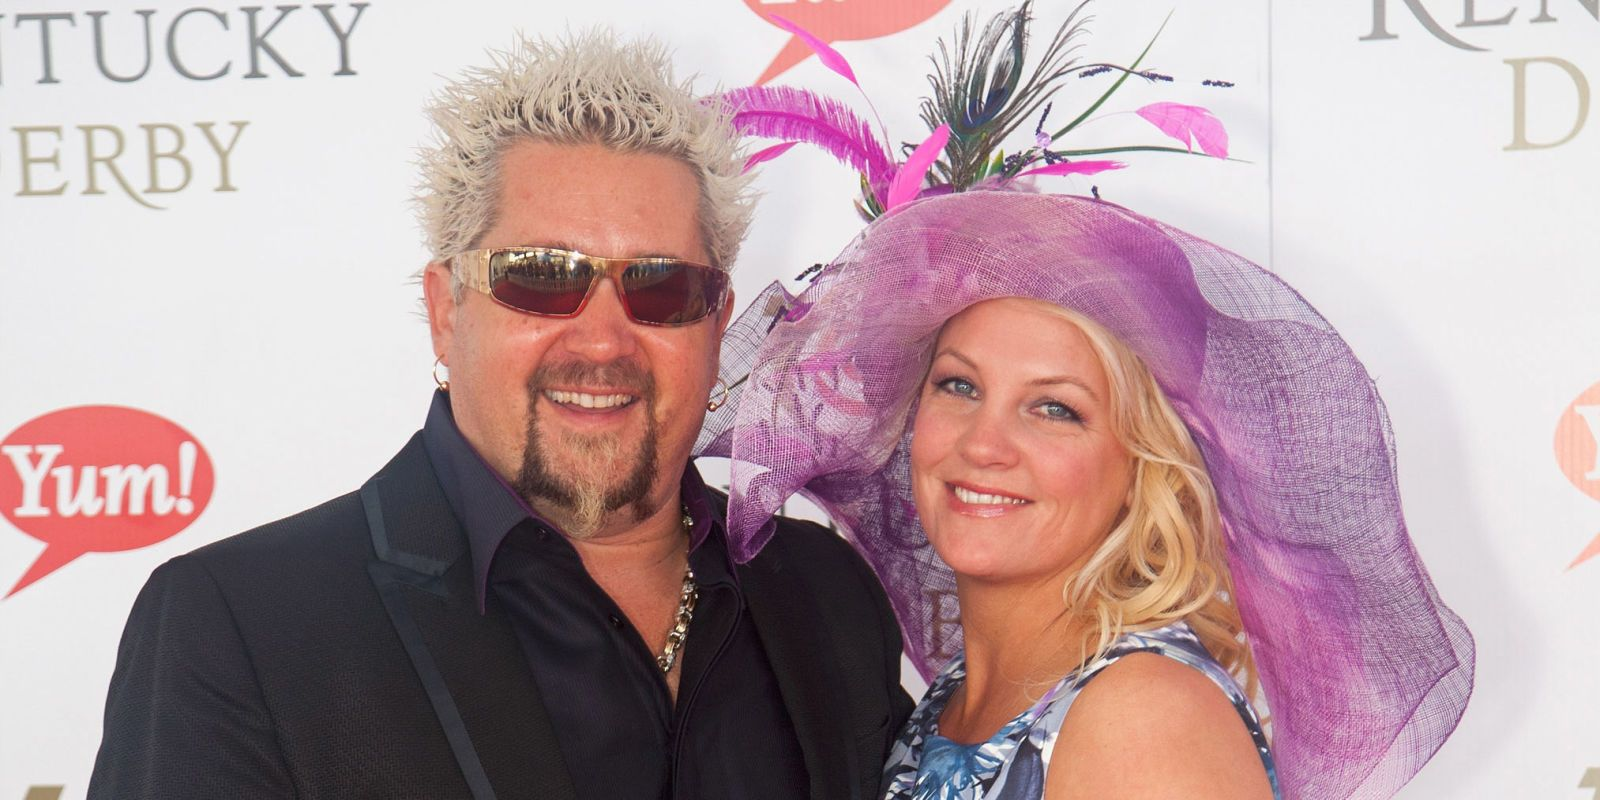 The Story Of How Guy Fieri Met His Wife Will Turn Your Stone Heart To Mush